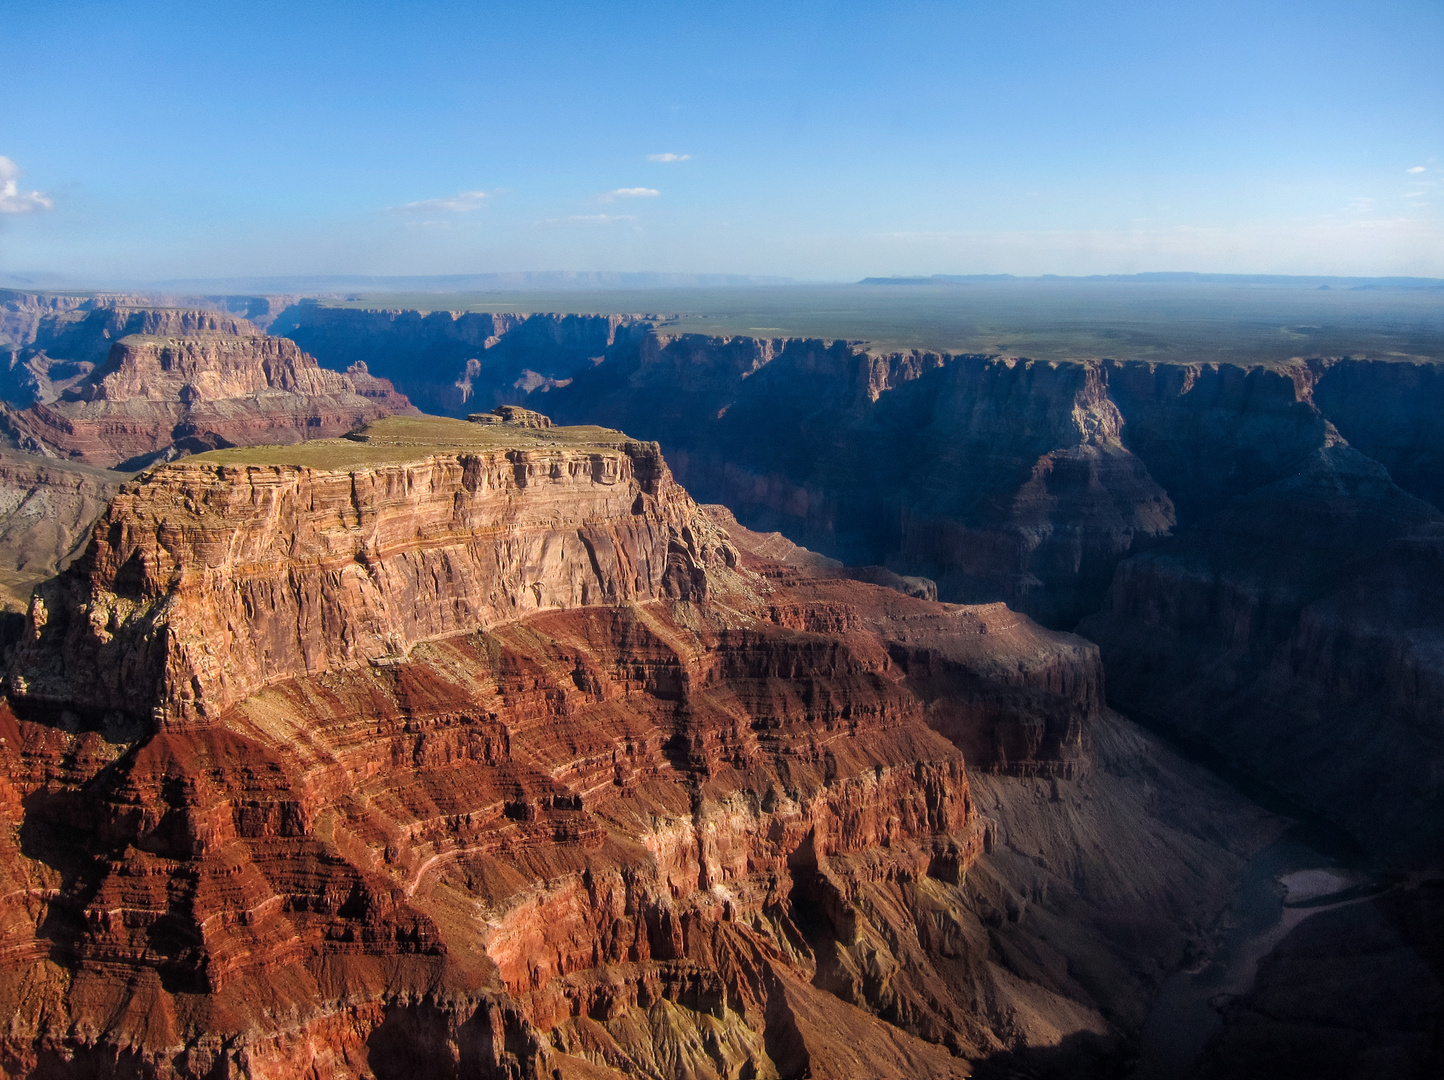 Colorado Plateau - Grand Canyon